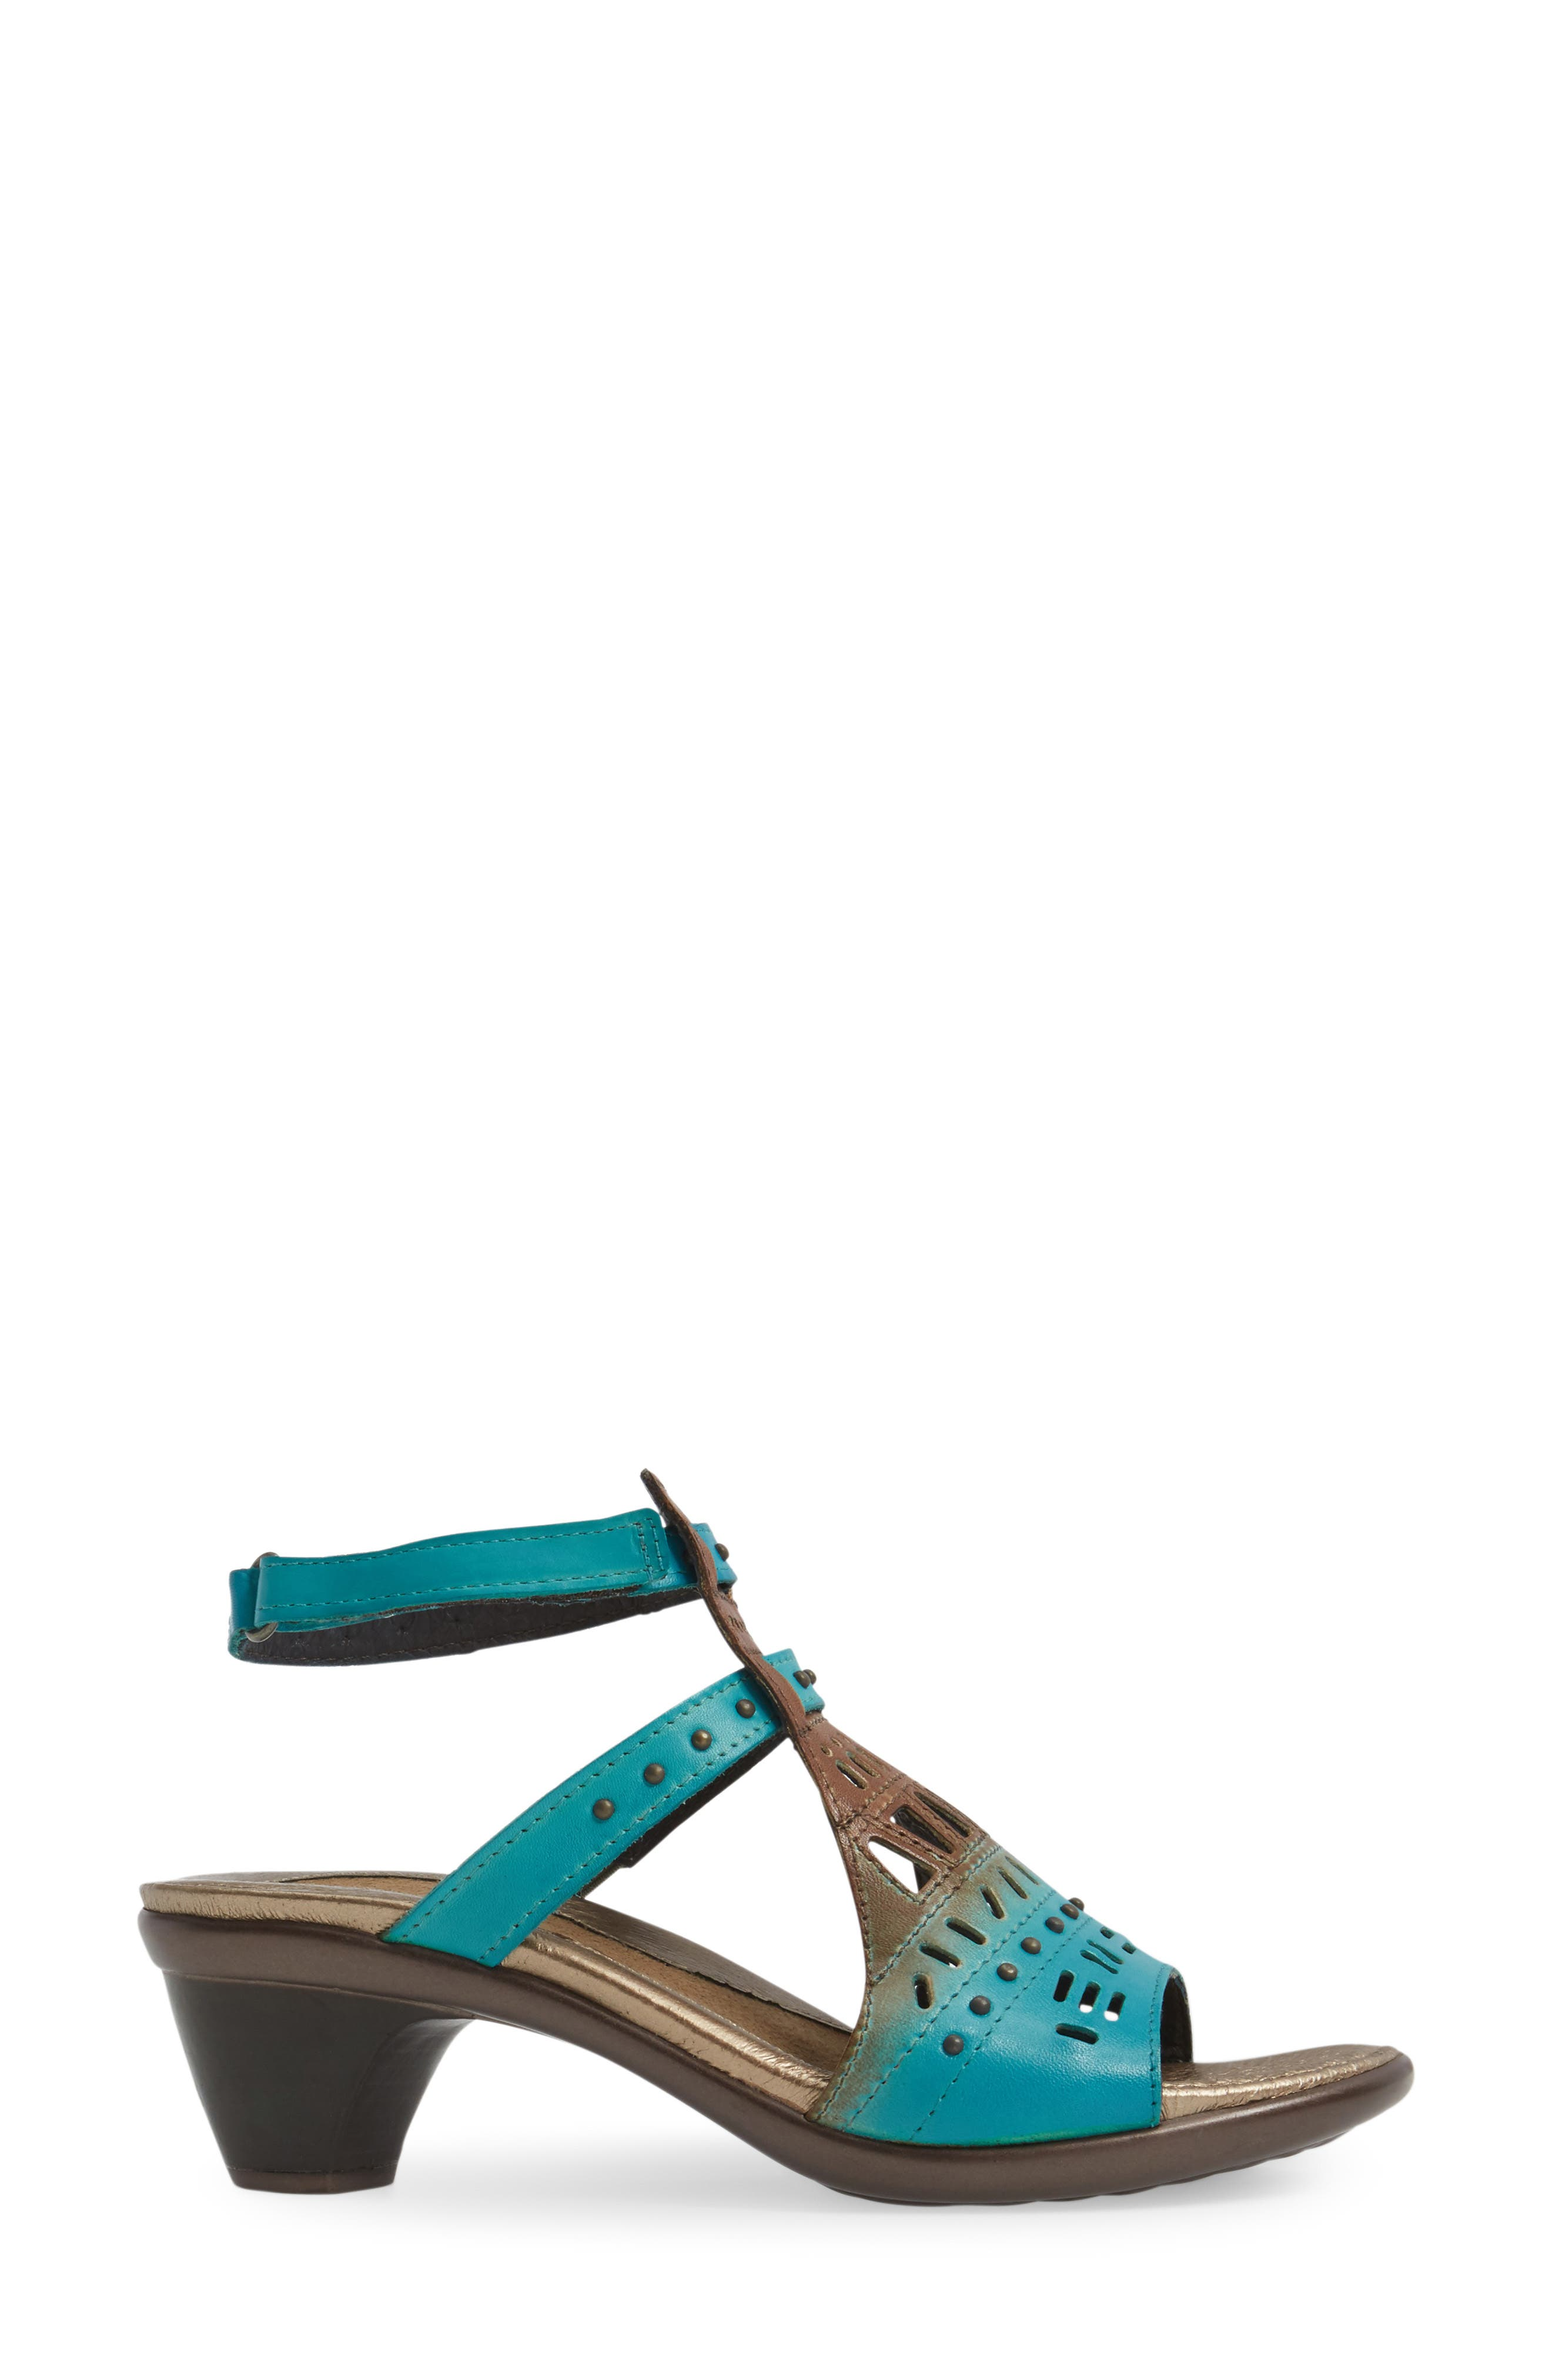 'Vogue' Sandal,                             Alternate thumbnail 3, color,                             TEAL BROWN LEATHER